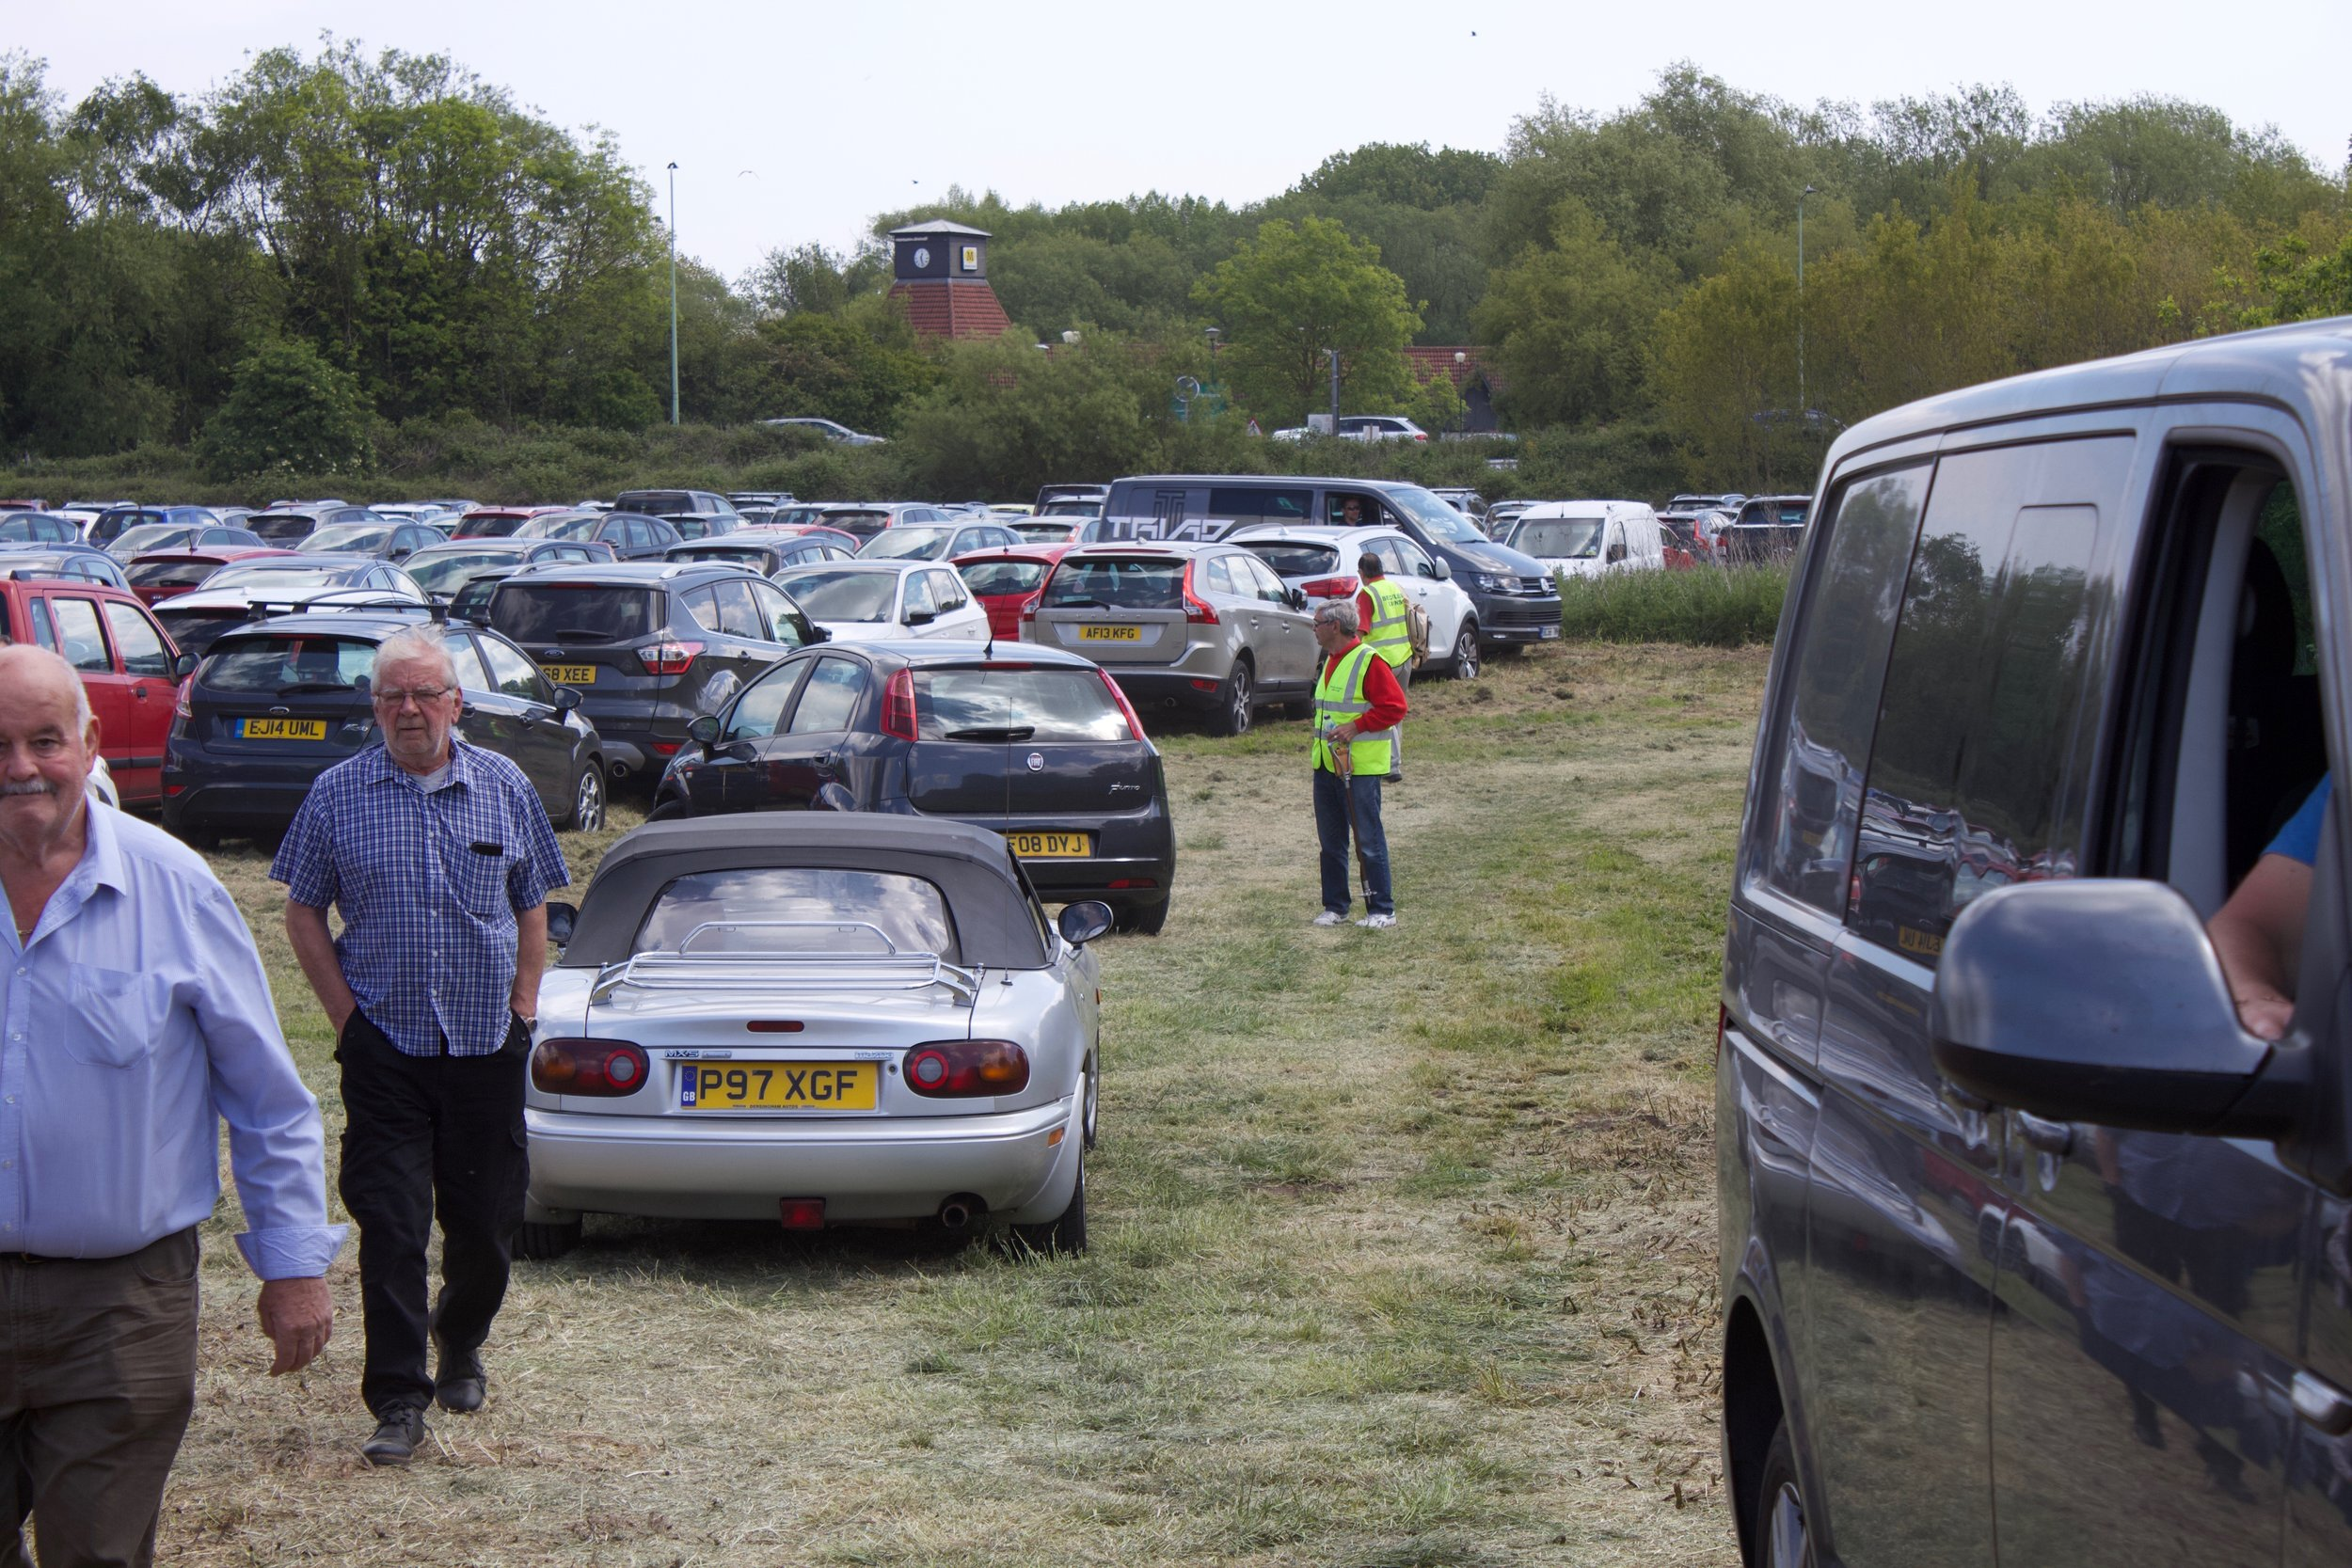 CAR PARKING: Members often take on the responsibility of controlling the Car Parks at local events and Festivals with the agreed fees all going to Charity.